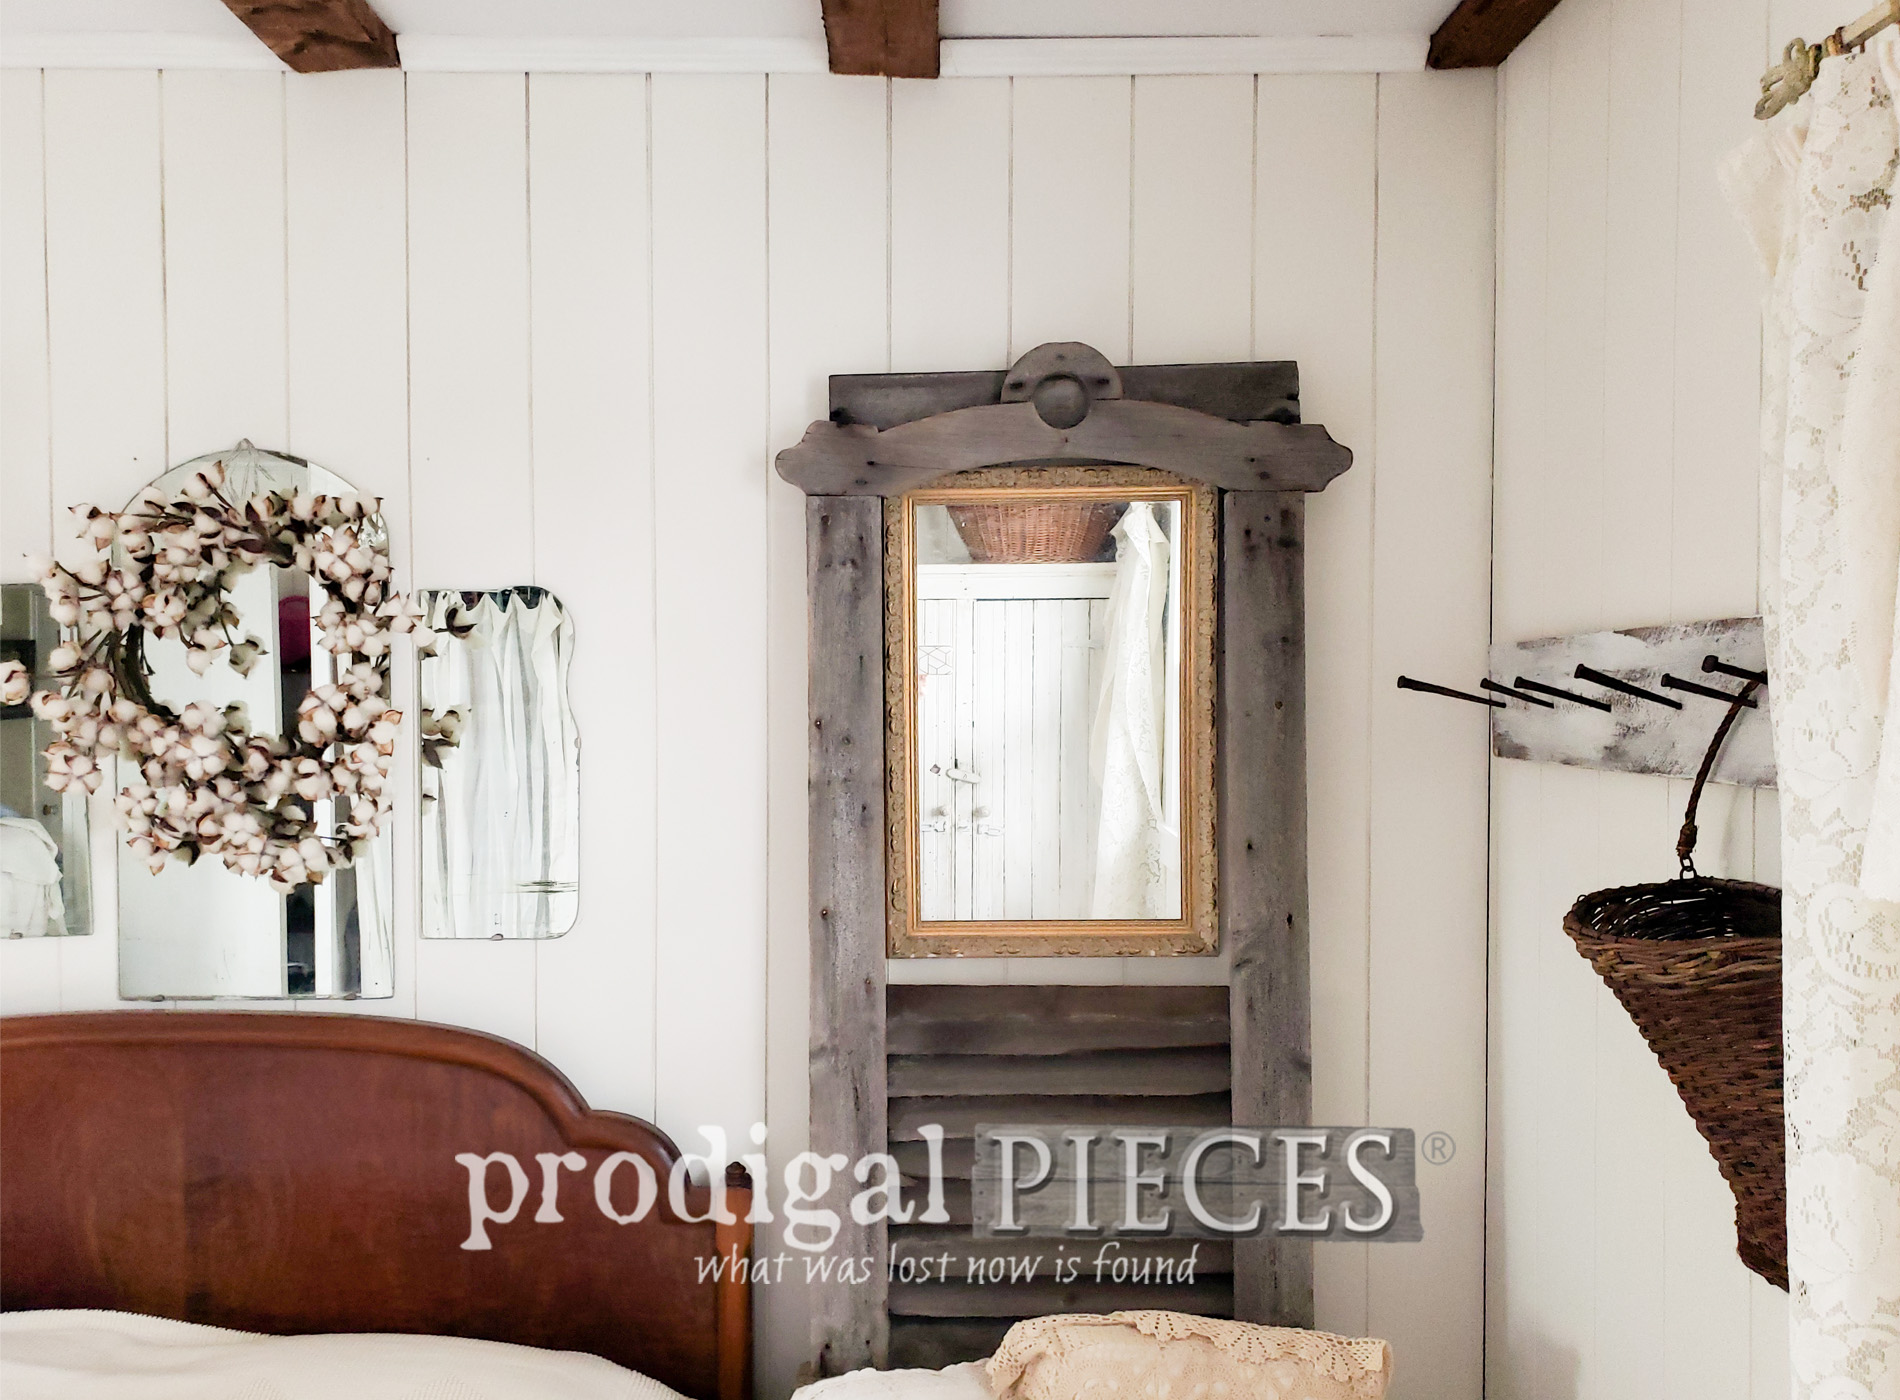 Featured How to Use Architectural Salvage in your home decor | by Larissa of Prodigal Pieces | prodigalpieces.com #prodigalpieces #diy #home #homedecor #farmhouse